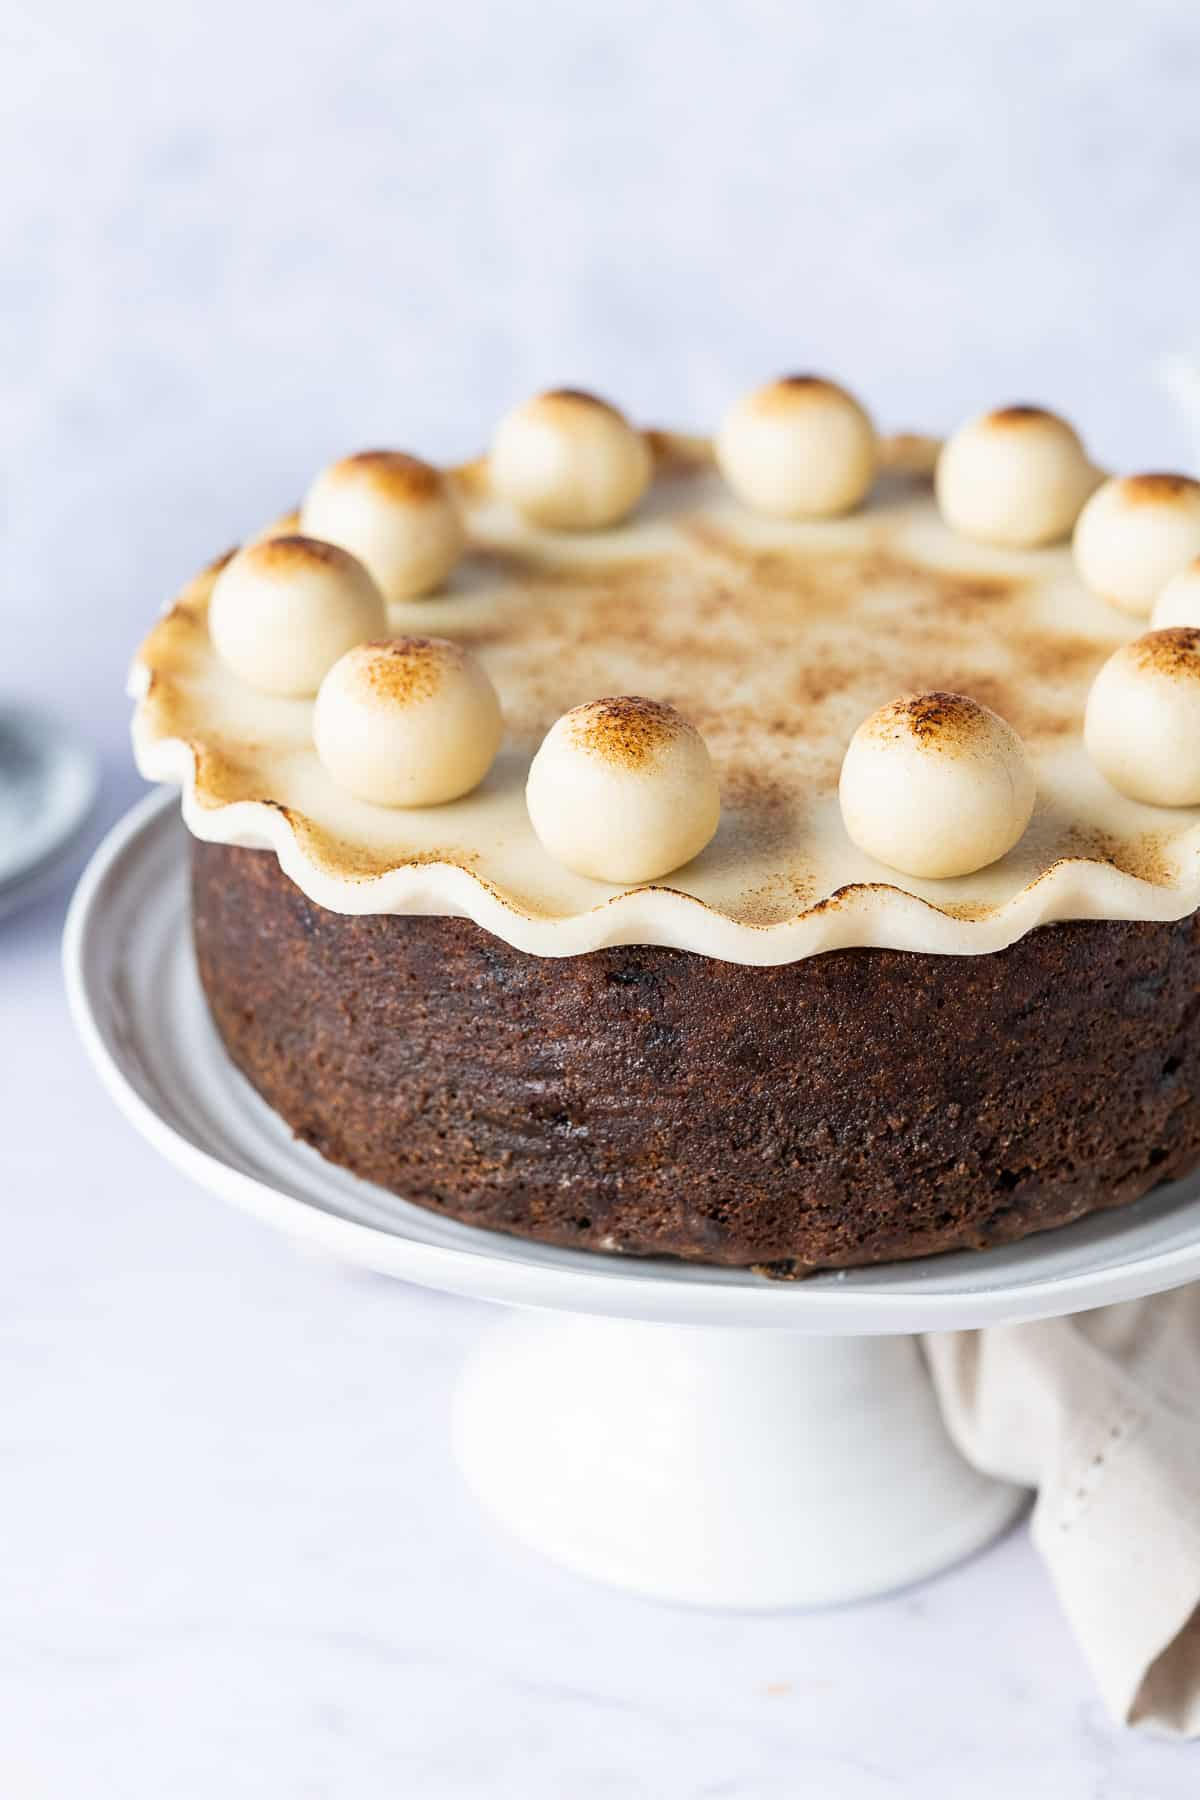 Close up of vegan simnel cake with marzipan decorations on a white cake stand.